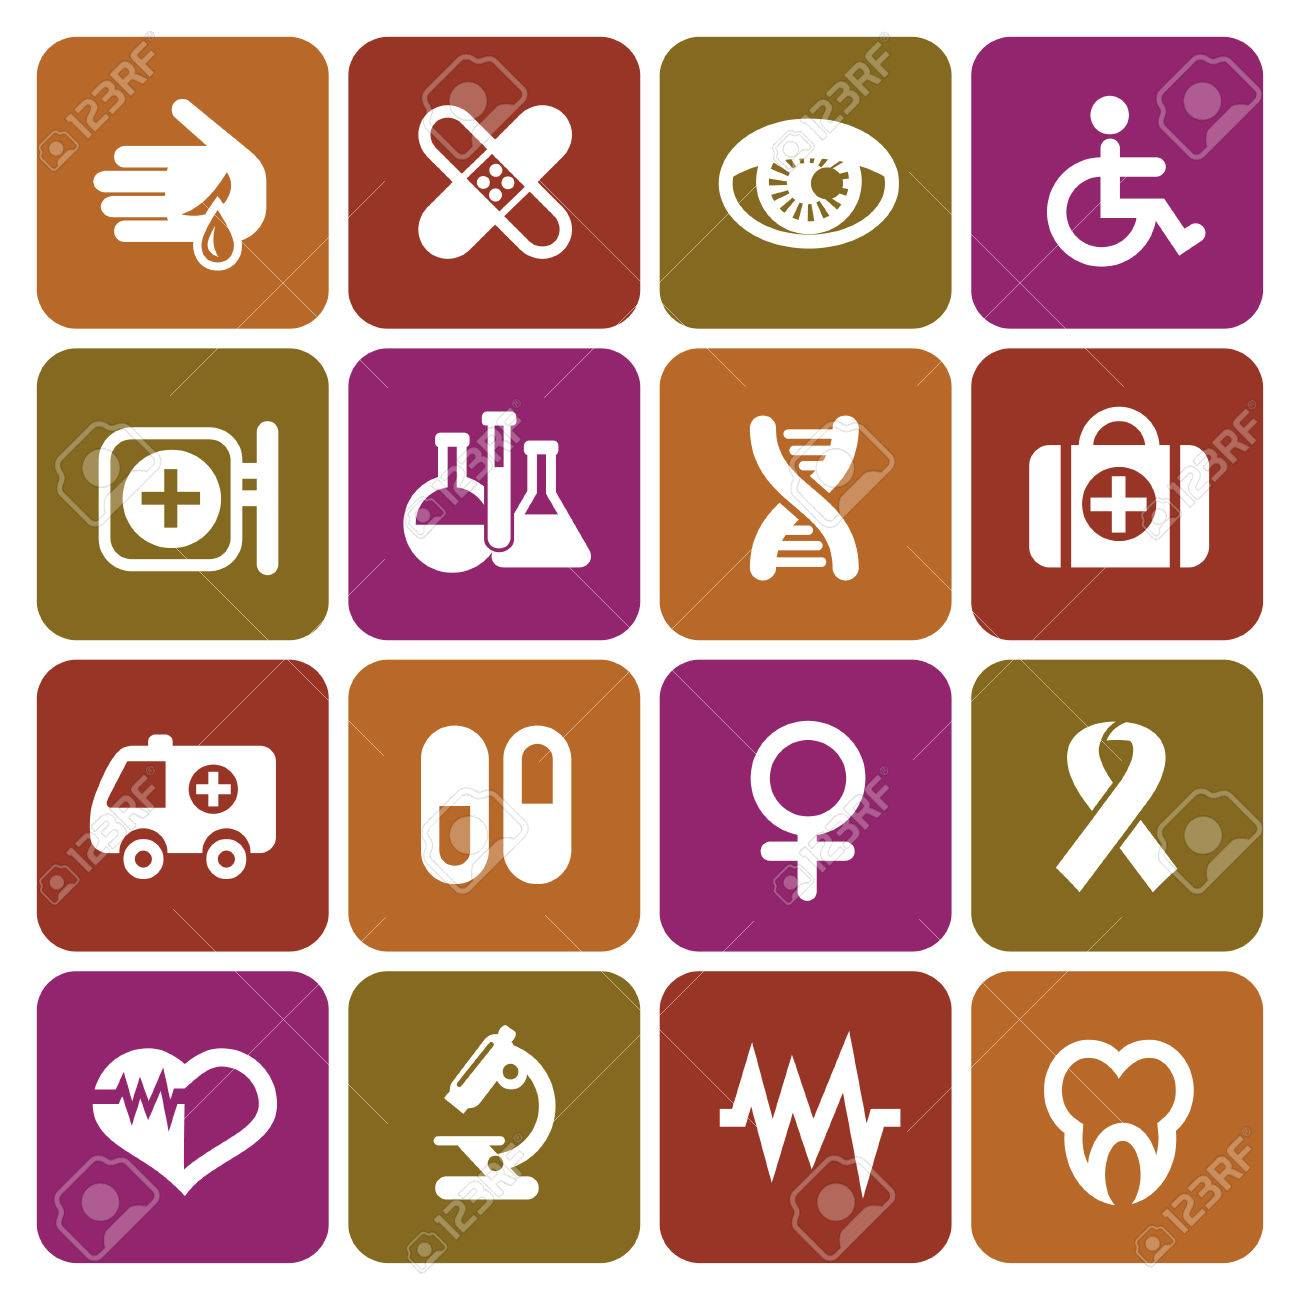 Set of medical icons in flat design, vector illustration Stock Vector - 24062213